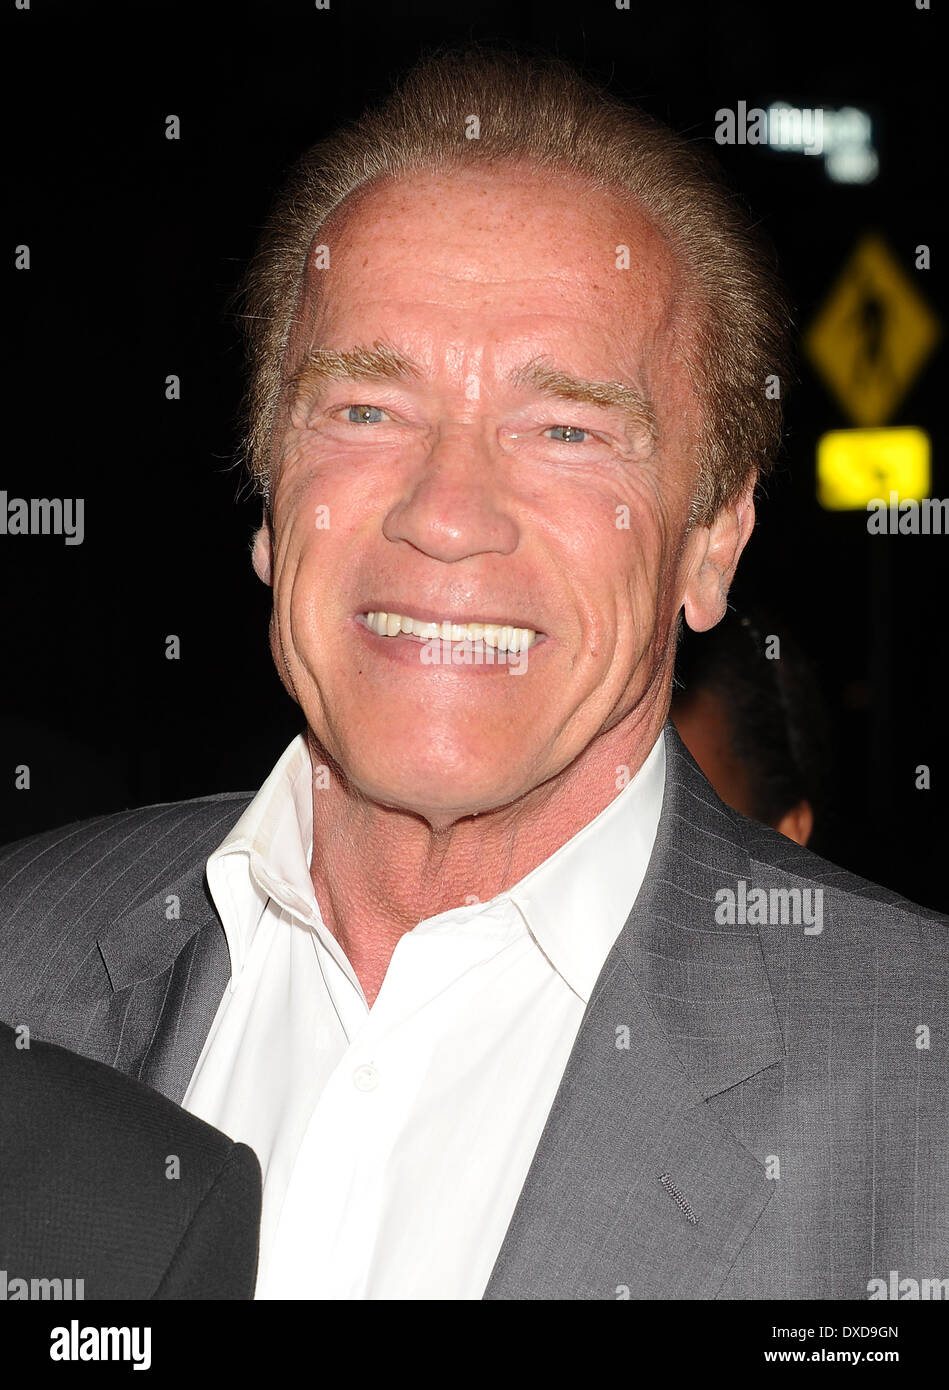 ARNOLD SCHWARZENEGGER American film actor in March 2014